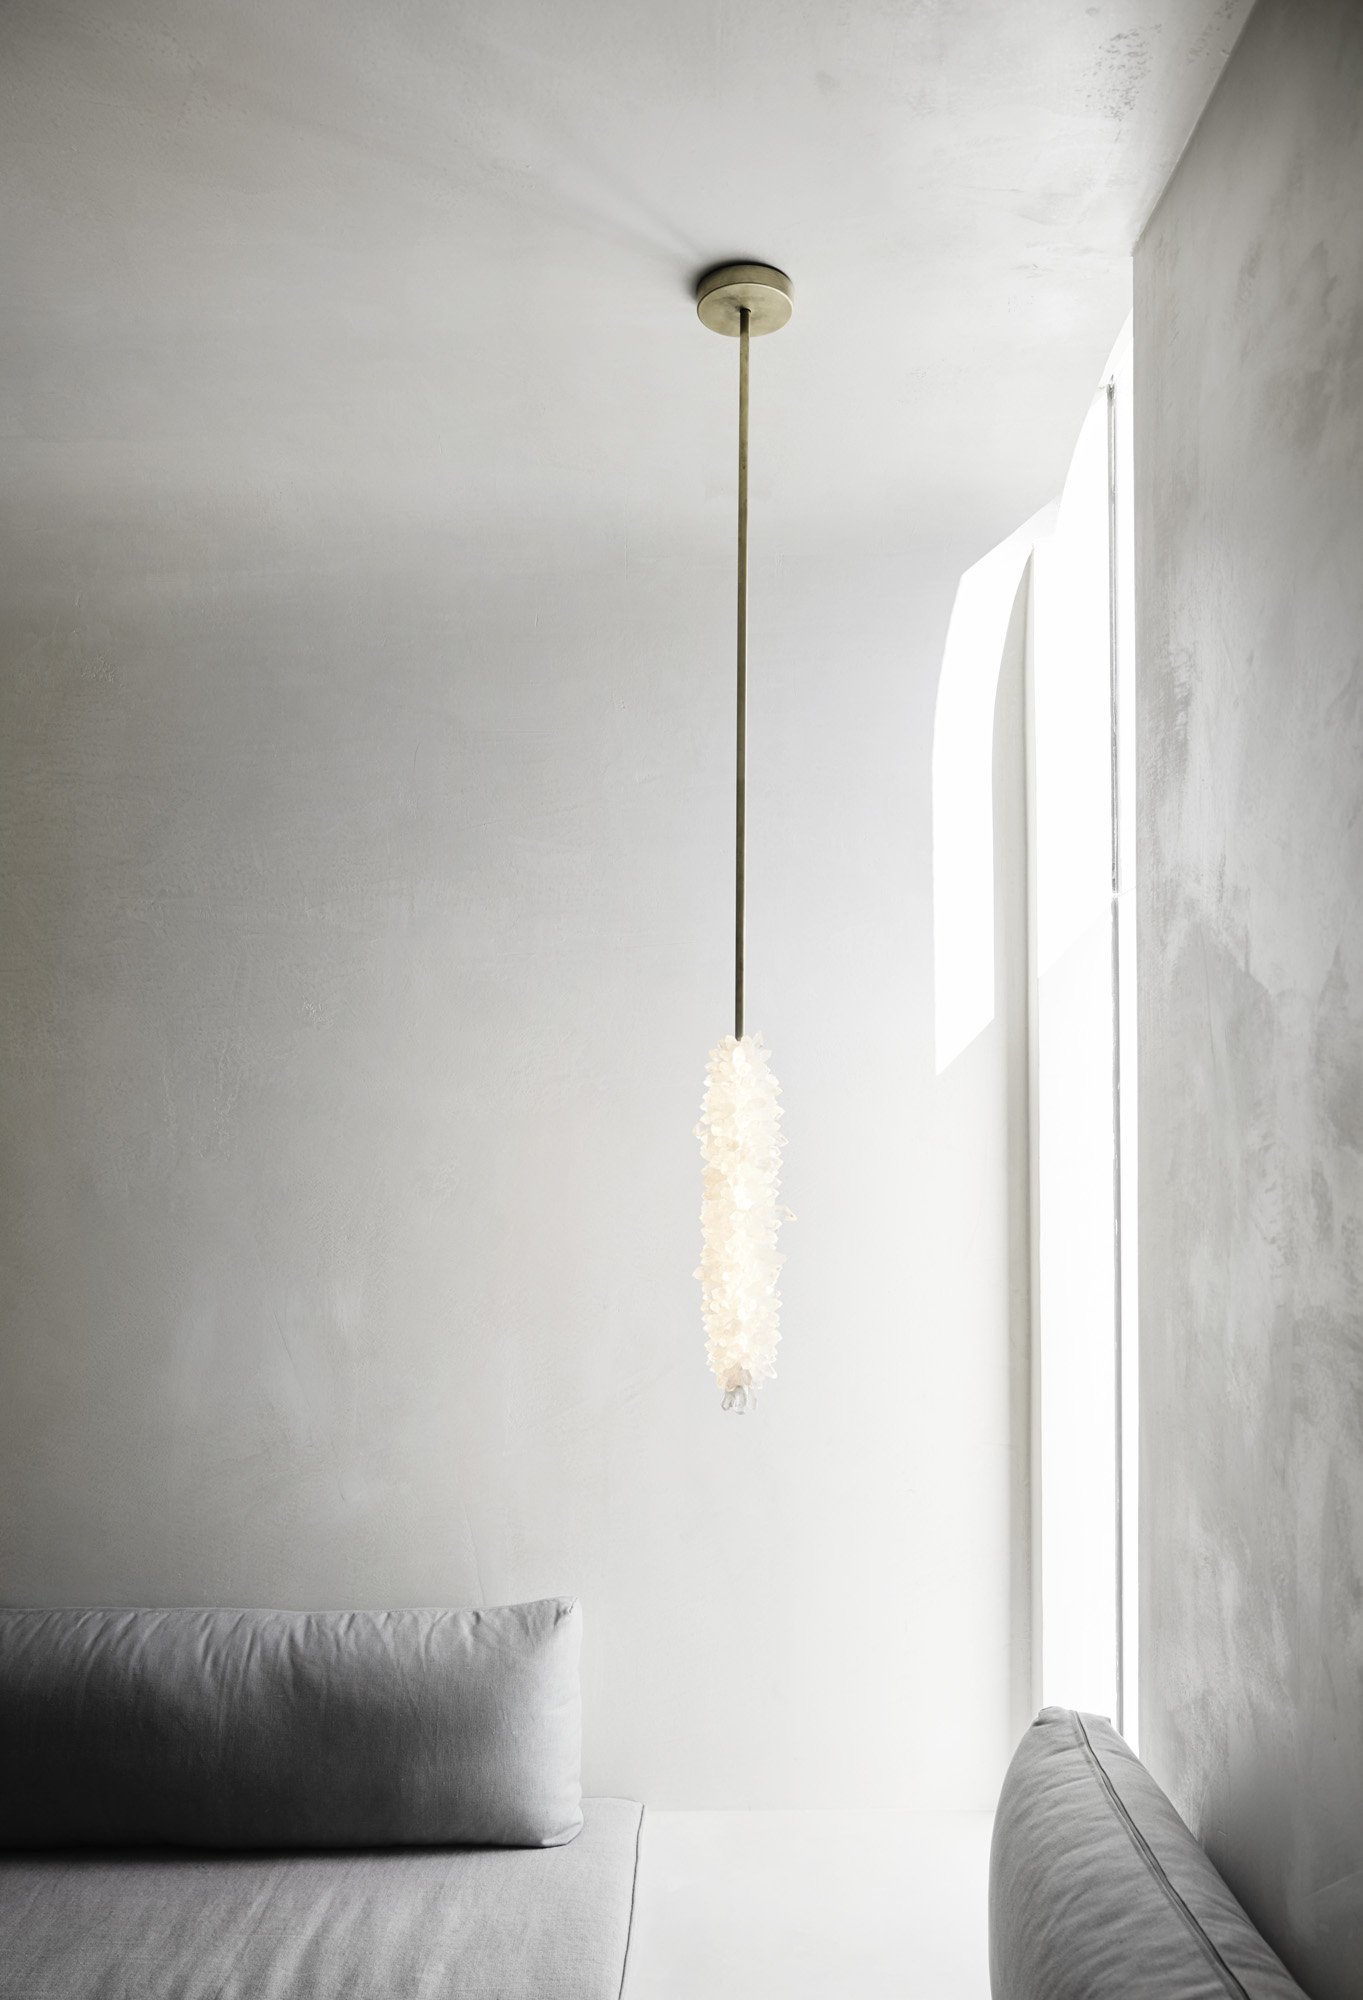 Stalactite Pendant by Christopher Boots